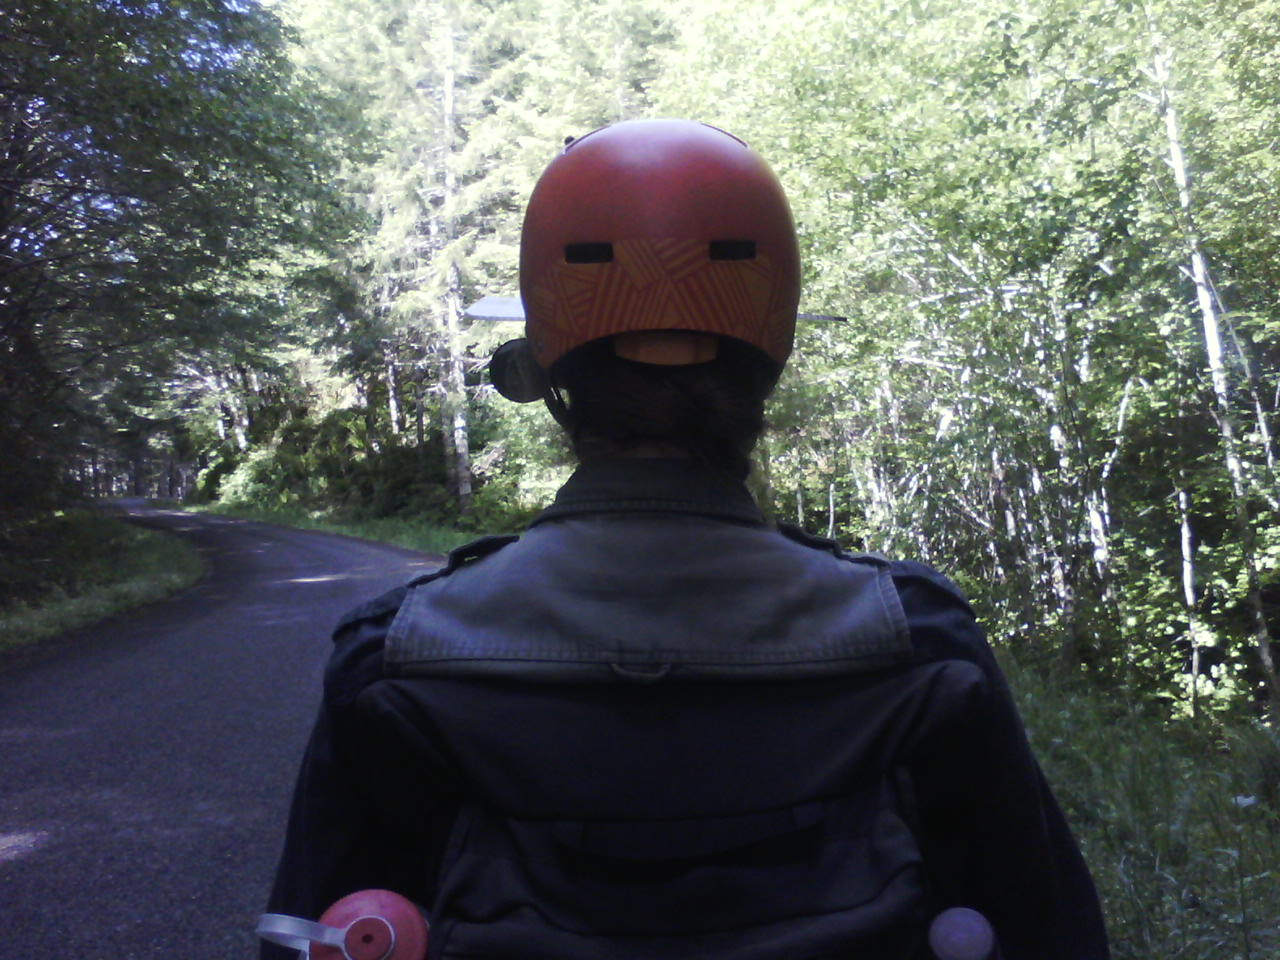 View of the back of a helmeted head on a tandem bicycle in a forest